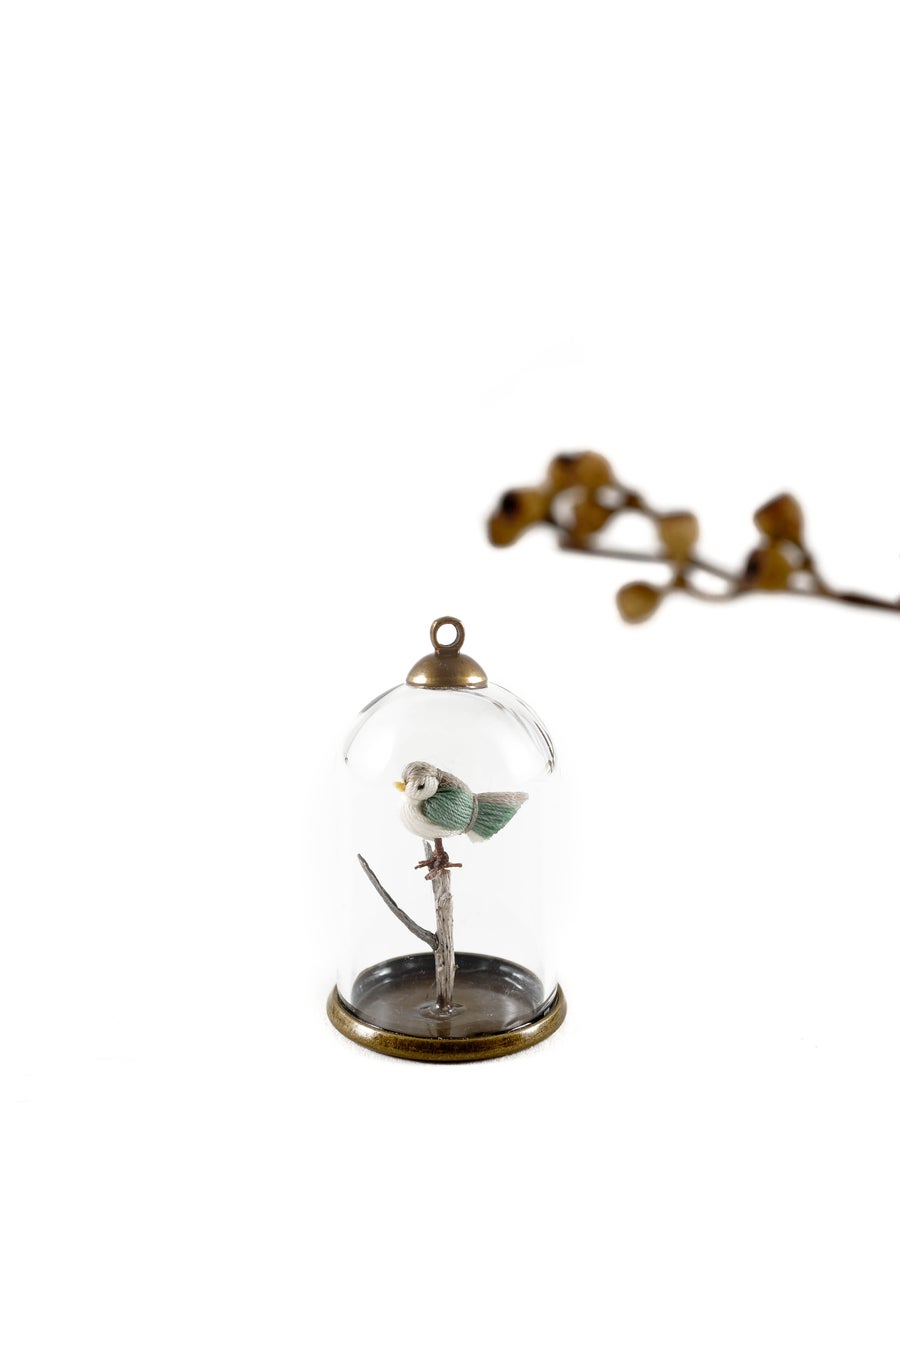 Image of DORIMU MINIATURE BIRD IN GLASS DOME - necklace - GREY